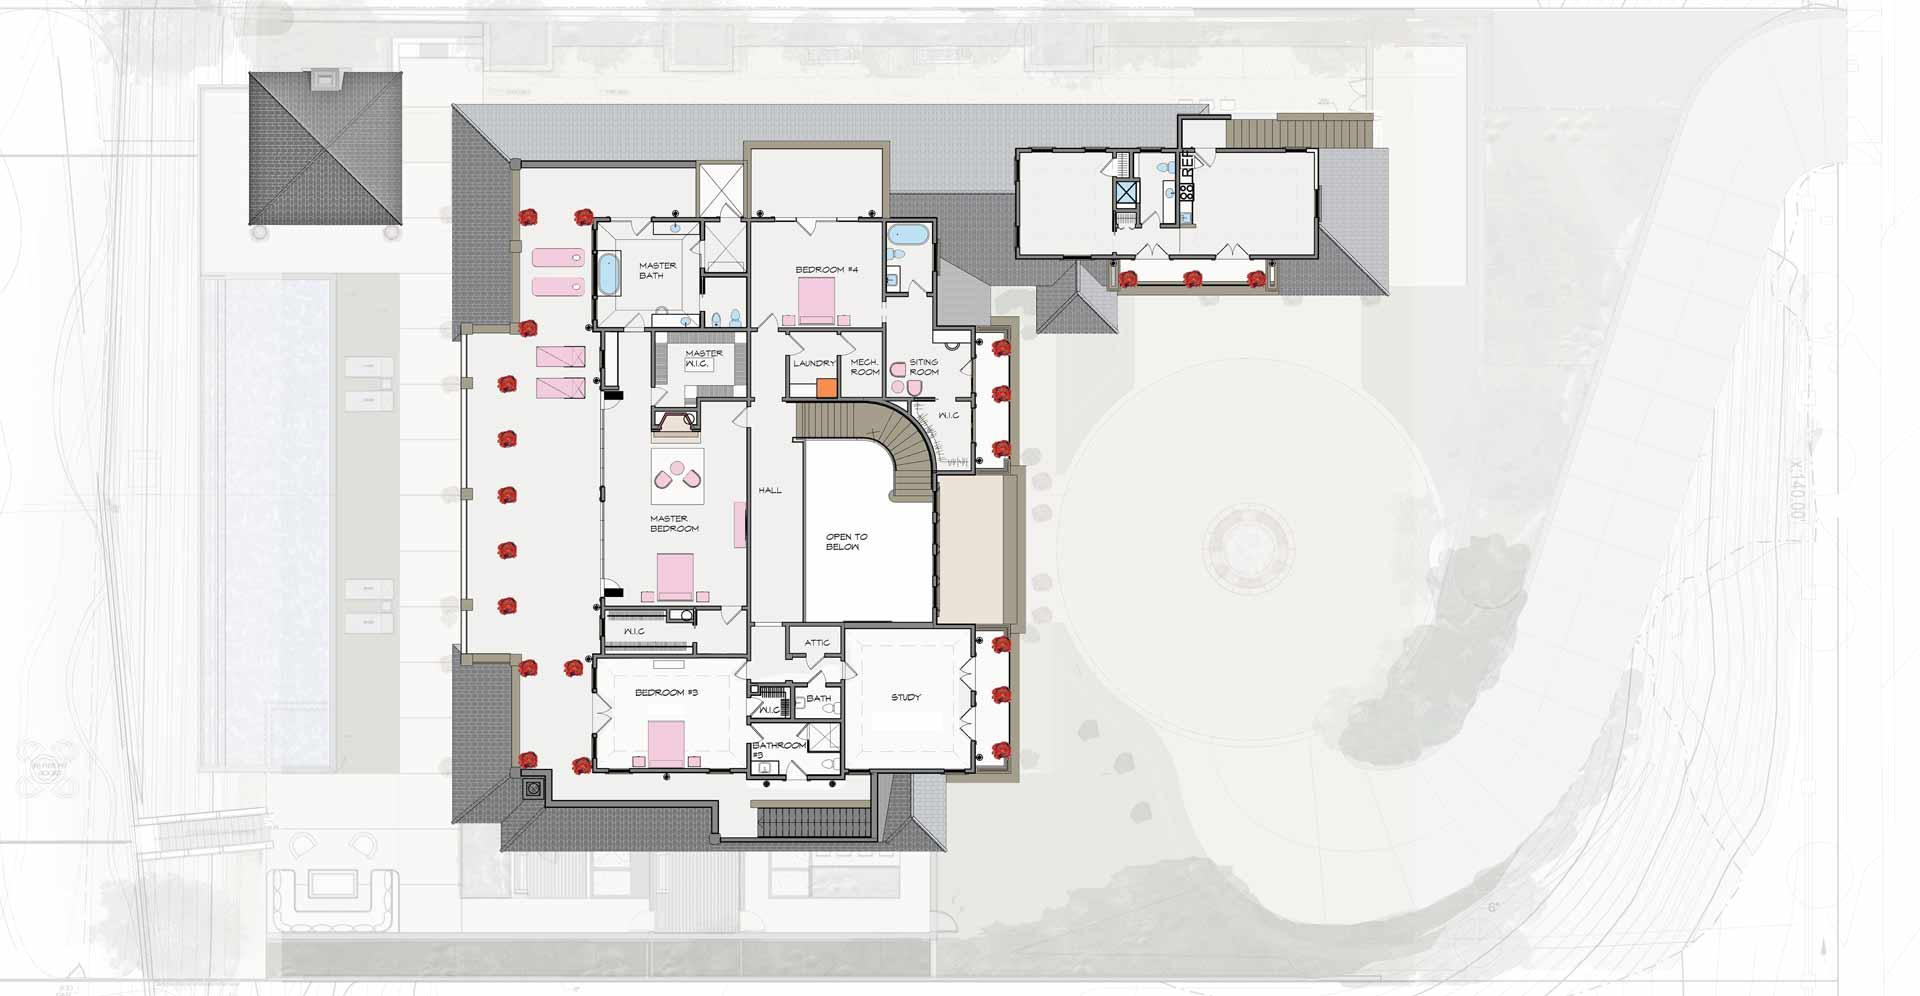 MALIBU-HOUSE-SECOND-FLOOR-PLAN.jpg